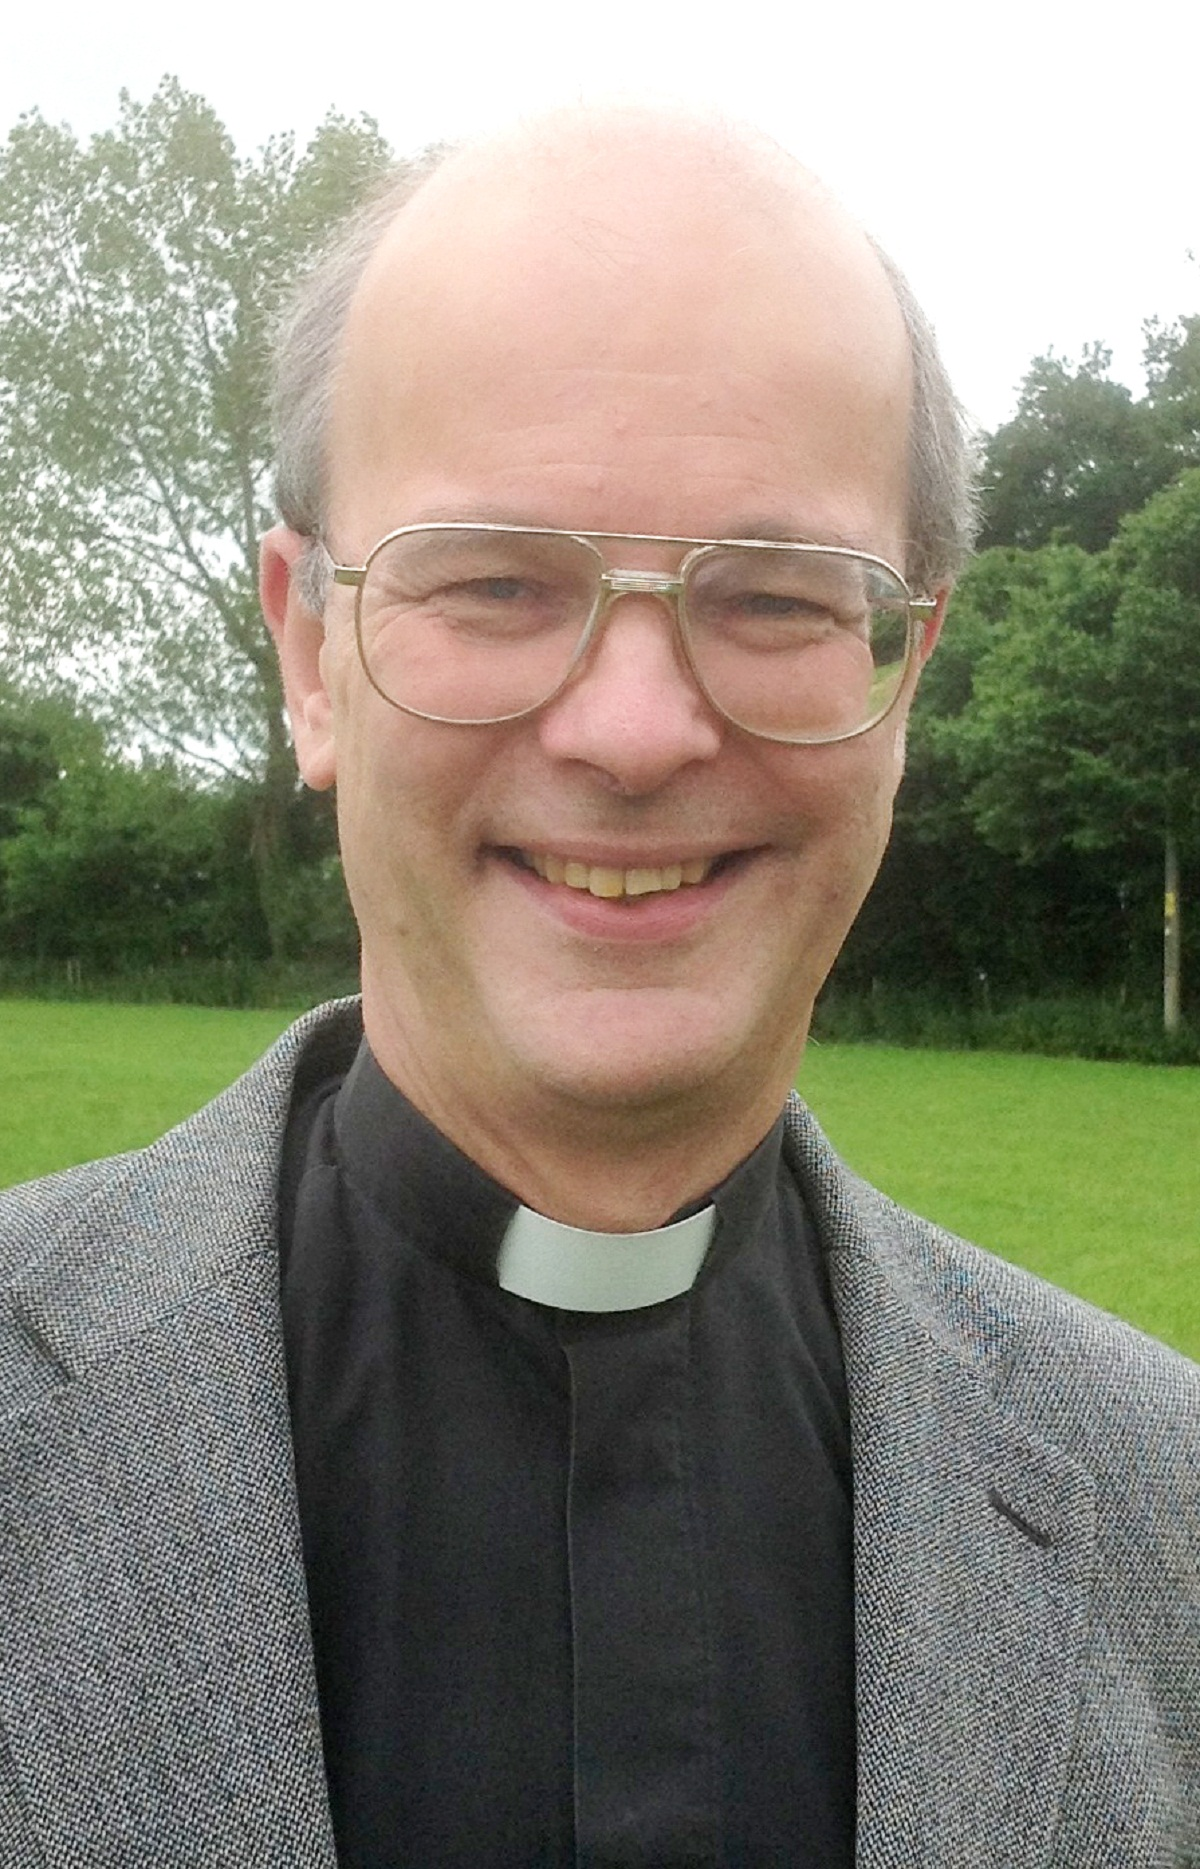 Mr Jackson said the new role would allow him to devote his attention to parochial and pastoral ministry.